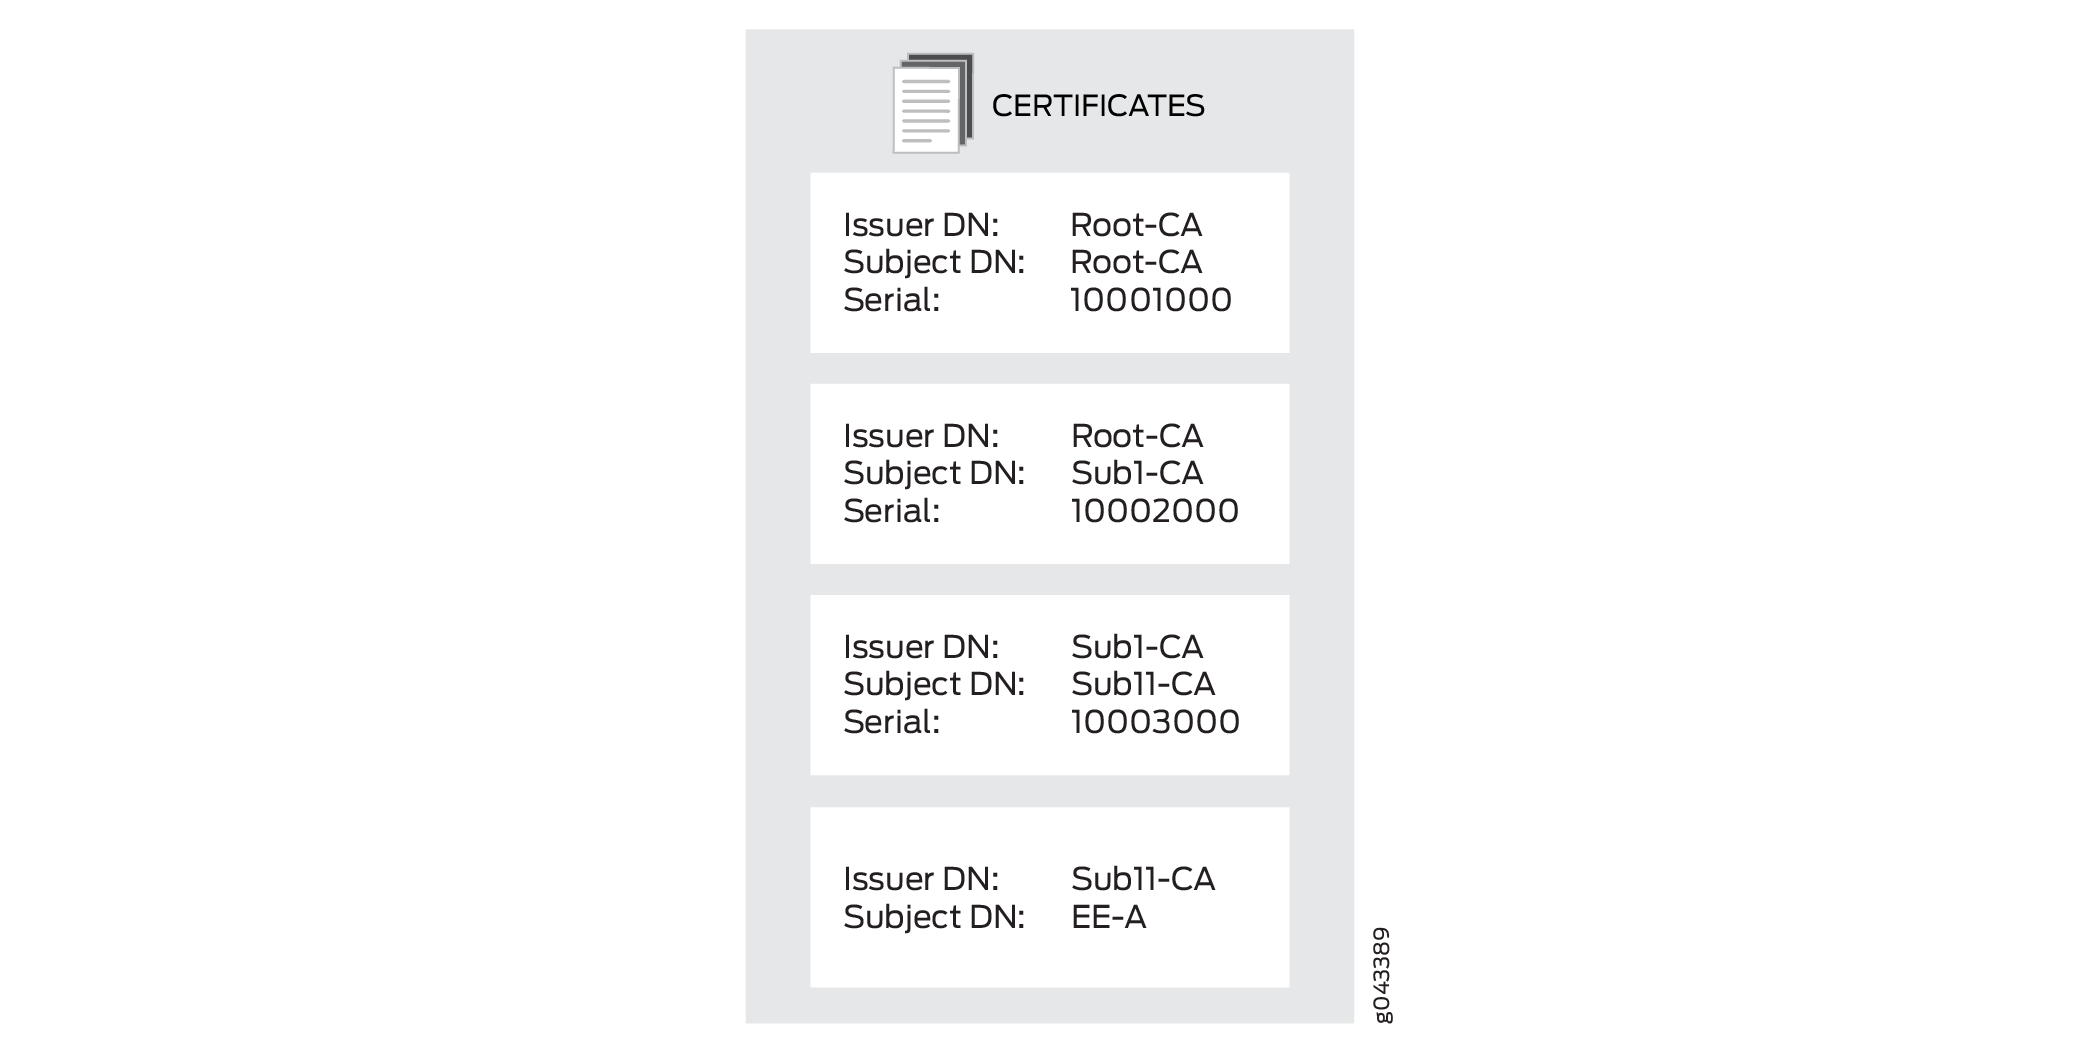 Configuring CA and Local Certificates - TechLibrary